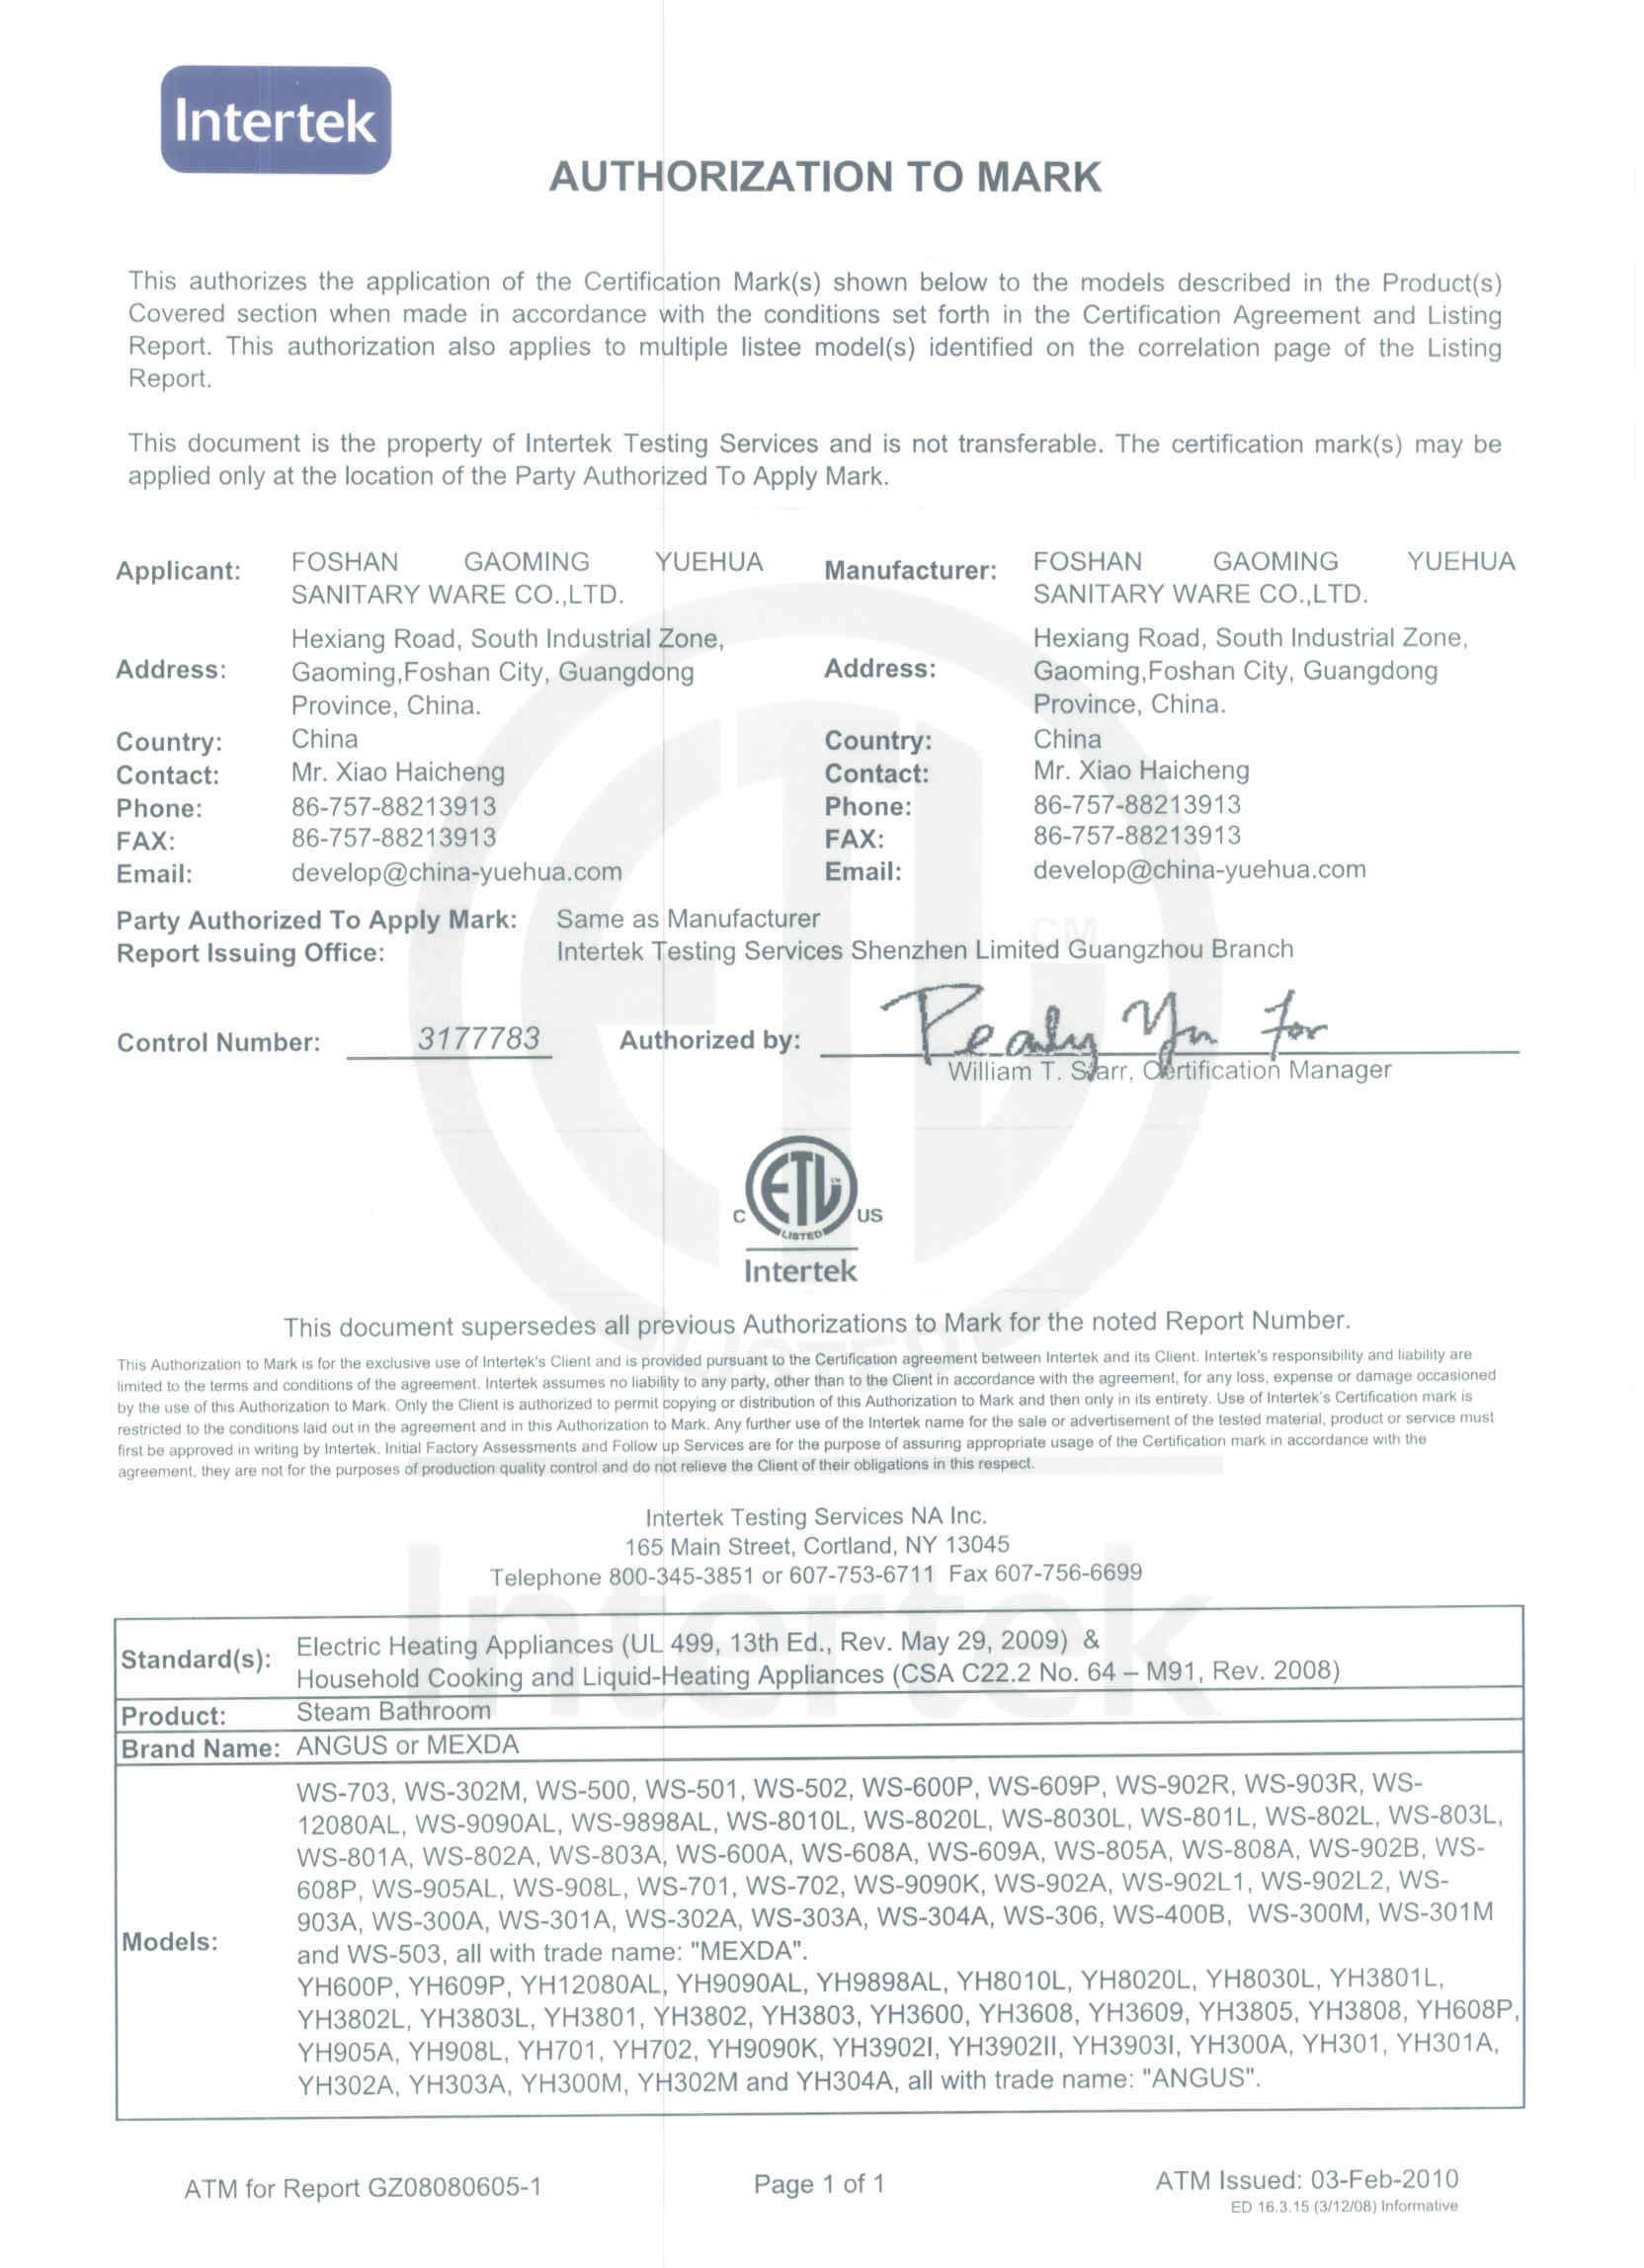 10 Meters Swim Pool And Spa Function Pool View Swimming